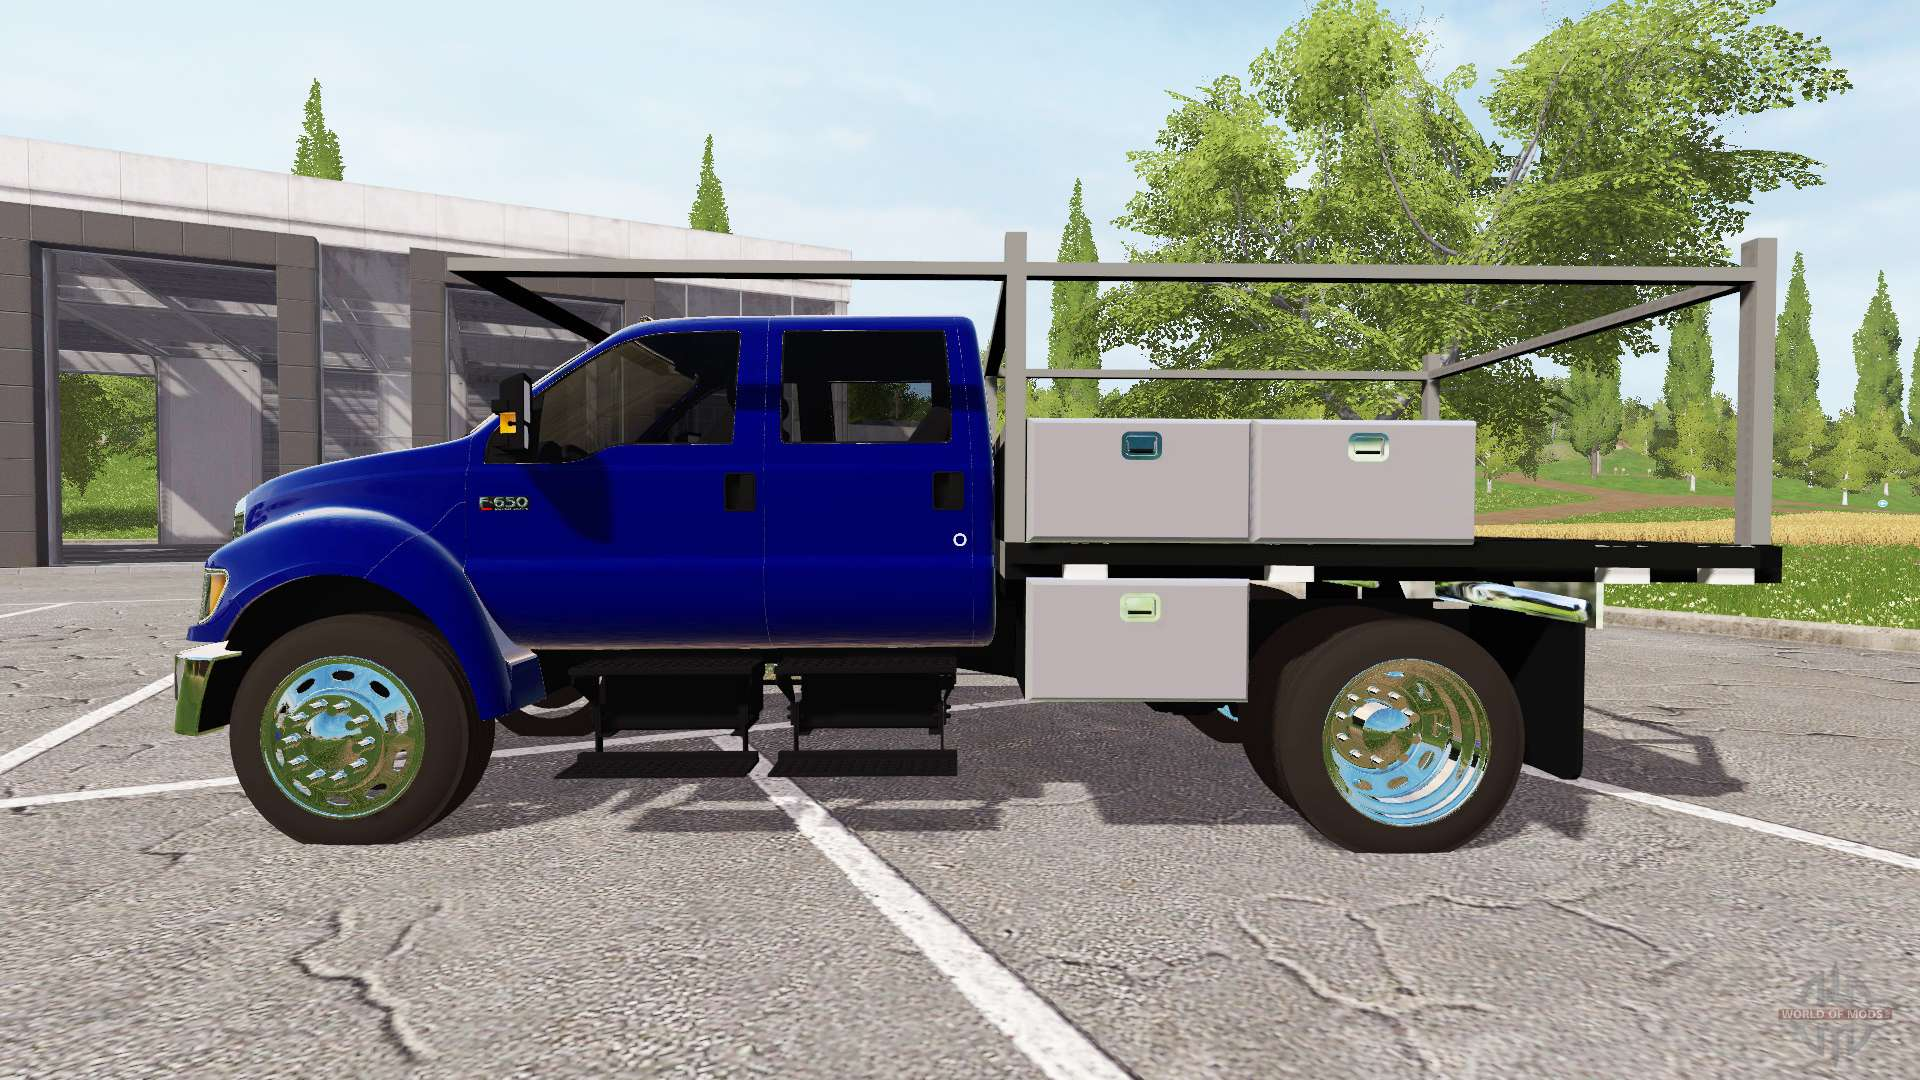 hight resolution of truck ford f 650 for farming simulator 17 the cost of the car in the game 8800 car maintenance day 2 engine power hp 910